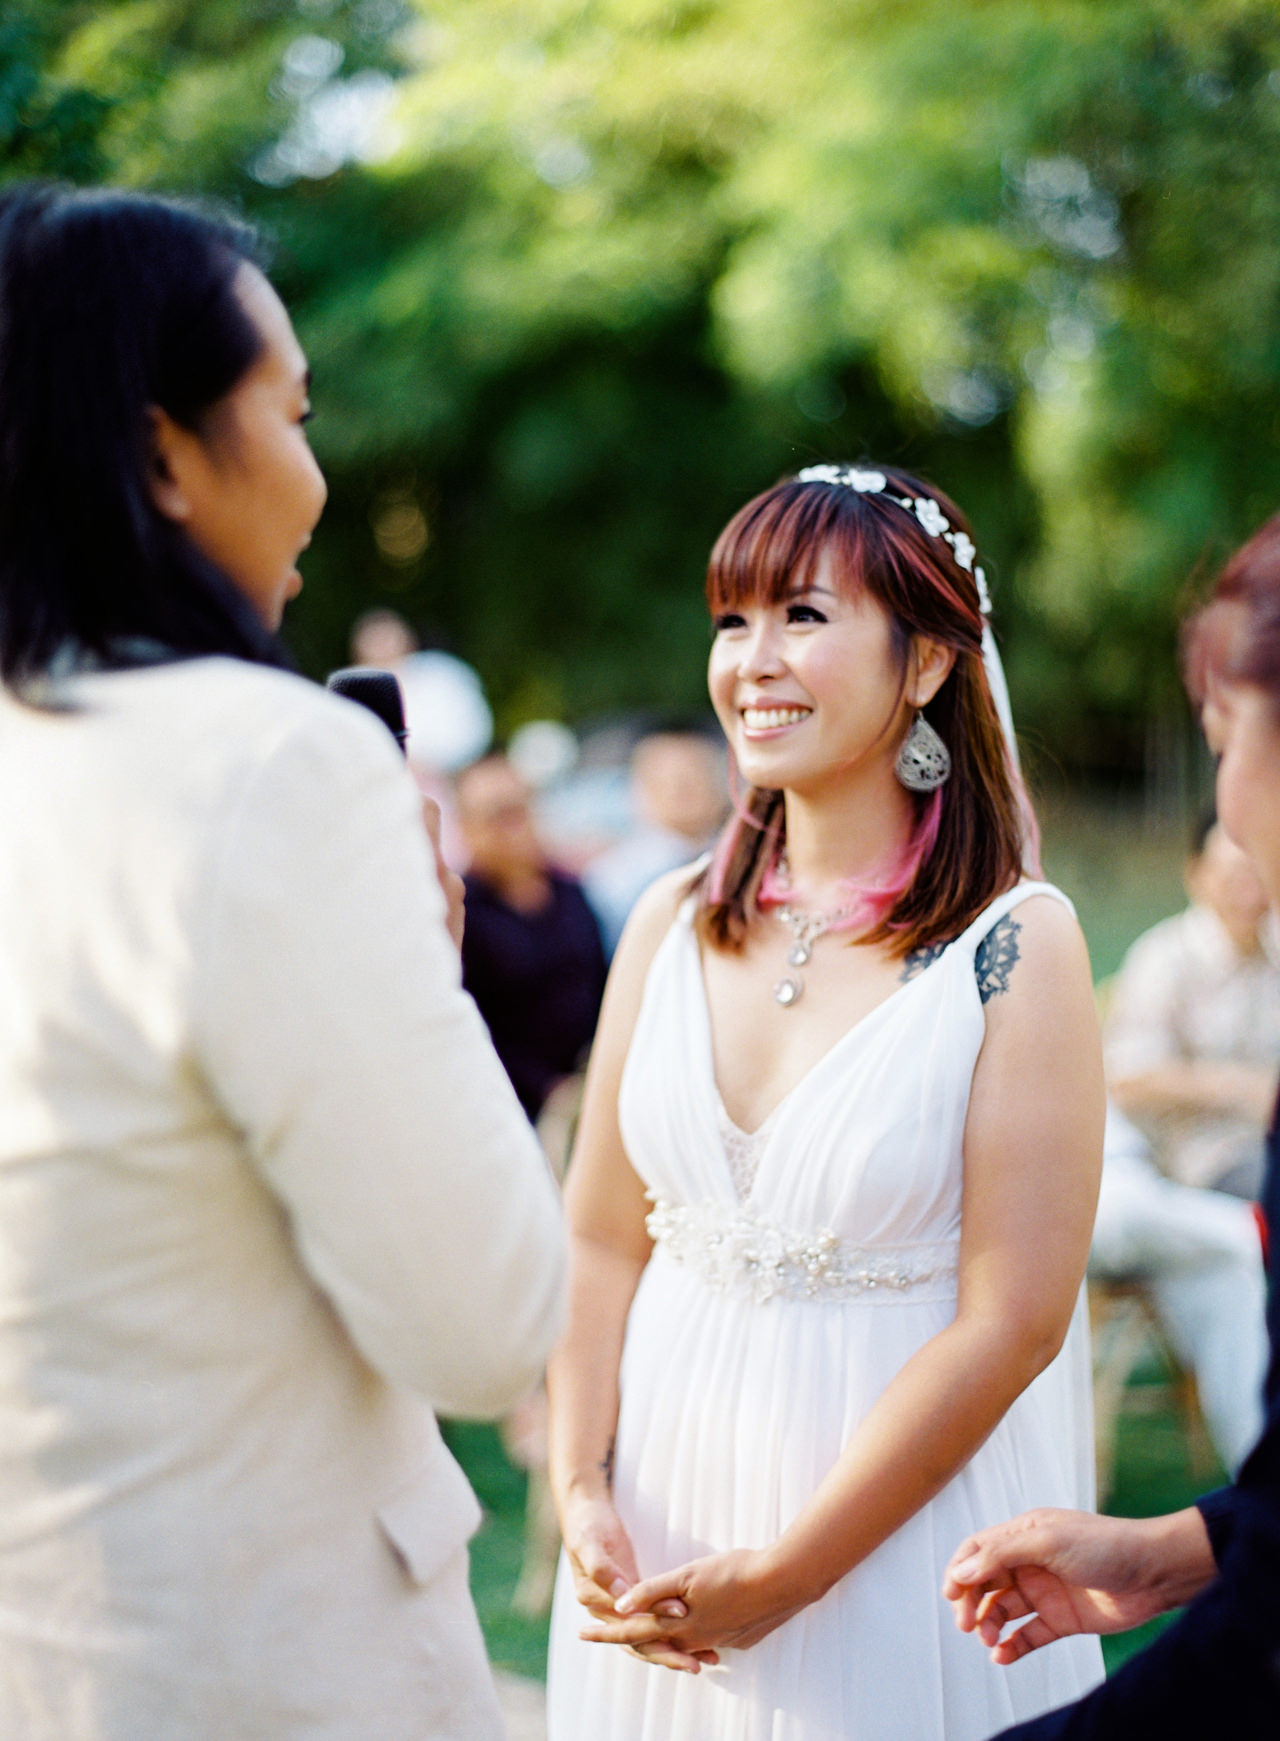 The Wedding of Bayu and Ivony at Gorgeous Bali Wedding Venue 22